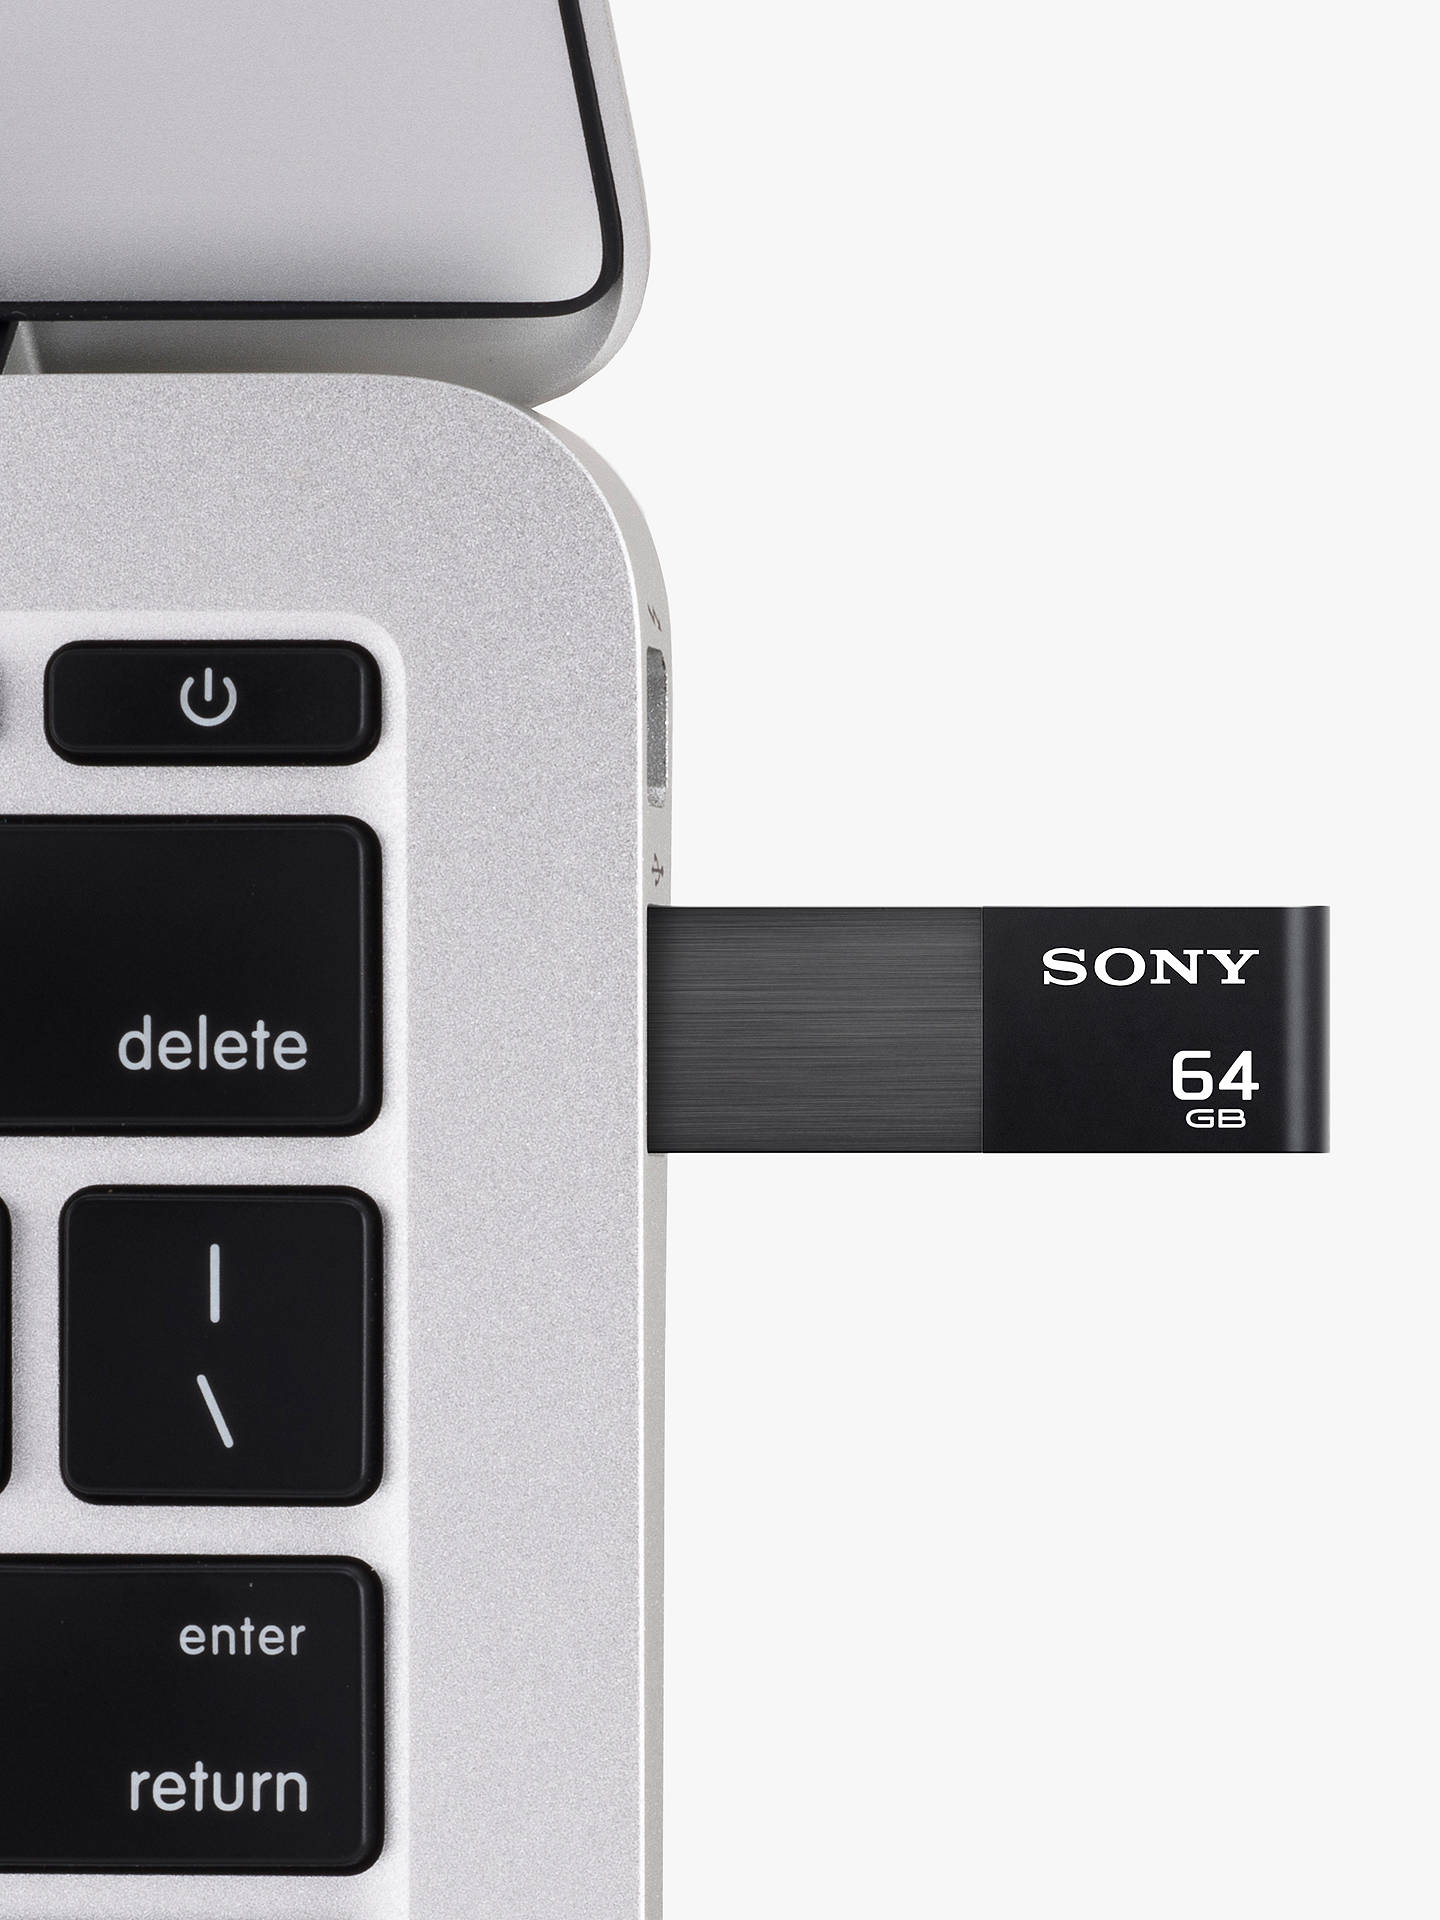 BuySony Portable USB 3.1 Flash Storage Drive, Black, 64GB Online at johnlewis.com